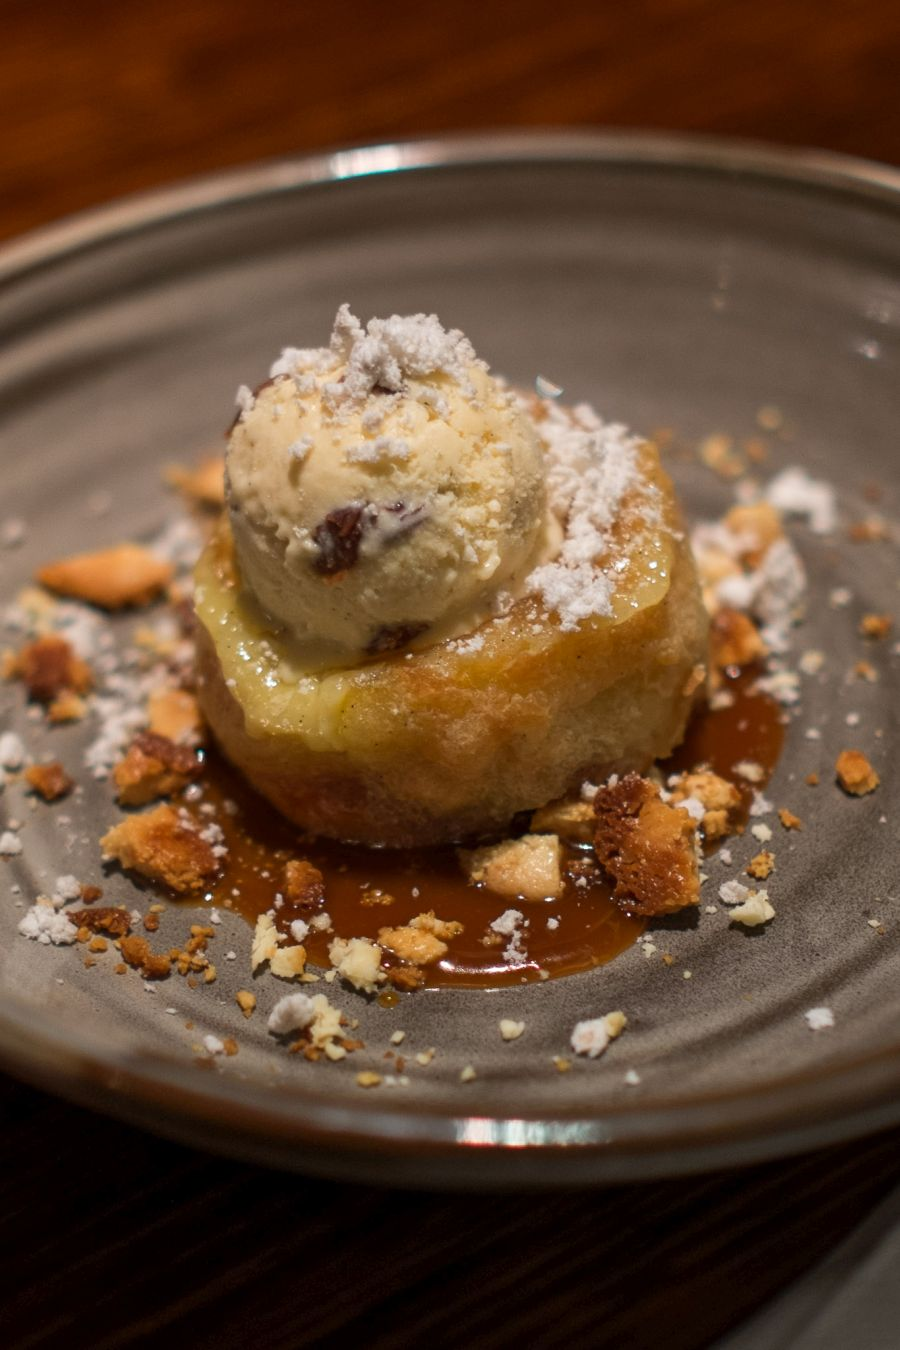 Croissant bread and butter pudding, salted caramel, Captain Morgan's ice cream (AU$14)